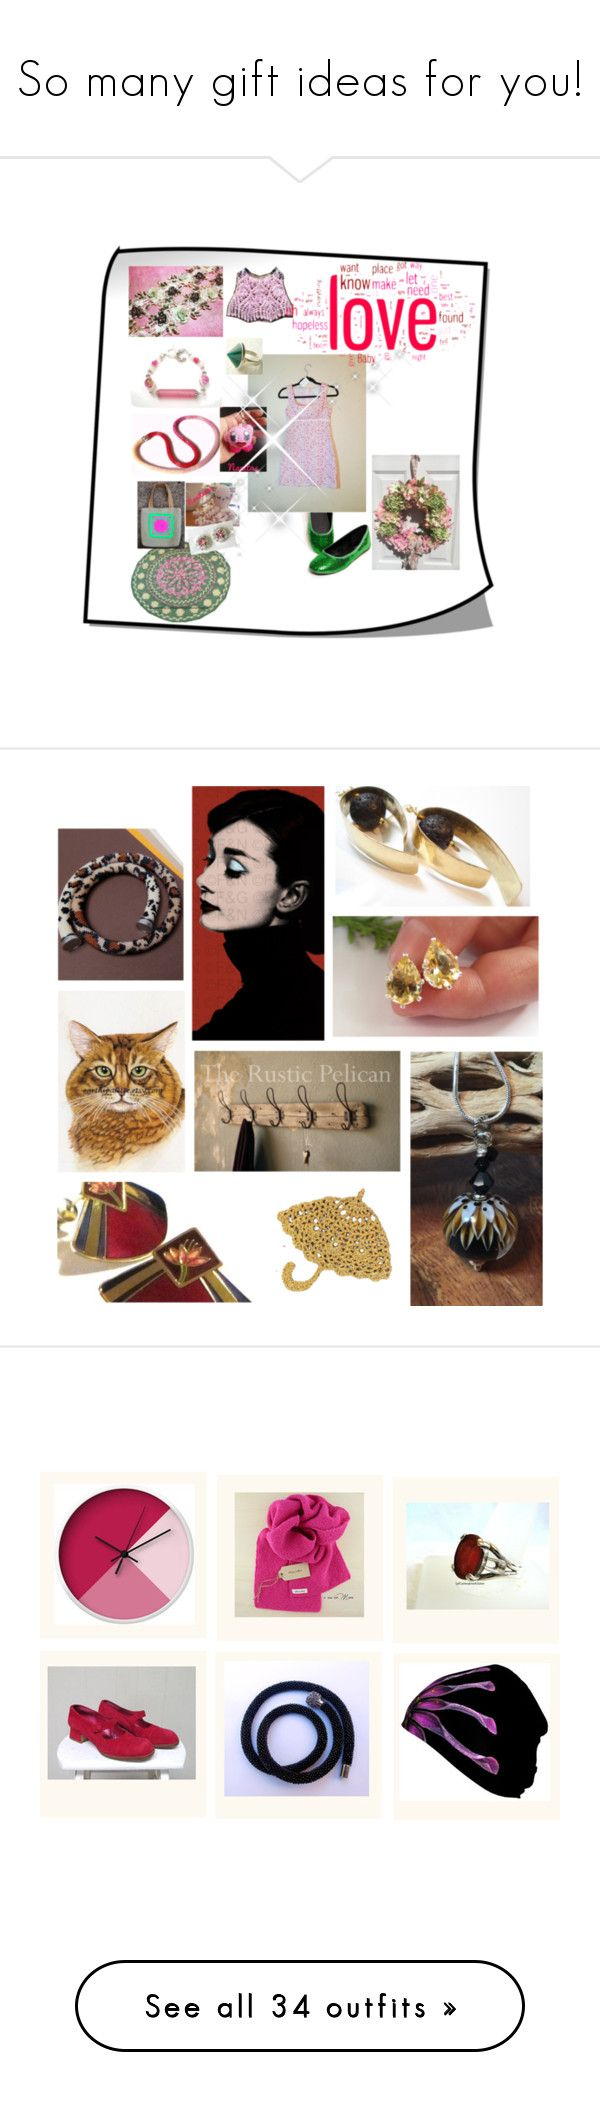 """""""So many gift ideas for you!"""" by colchico ❤ liked on Polyvore featuring vintage, jewelry, homedecor, handmade, Nintendo, Charles Jourdan, Cadeau, Rustico, Edie Parker and In Your Dreams"""